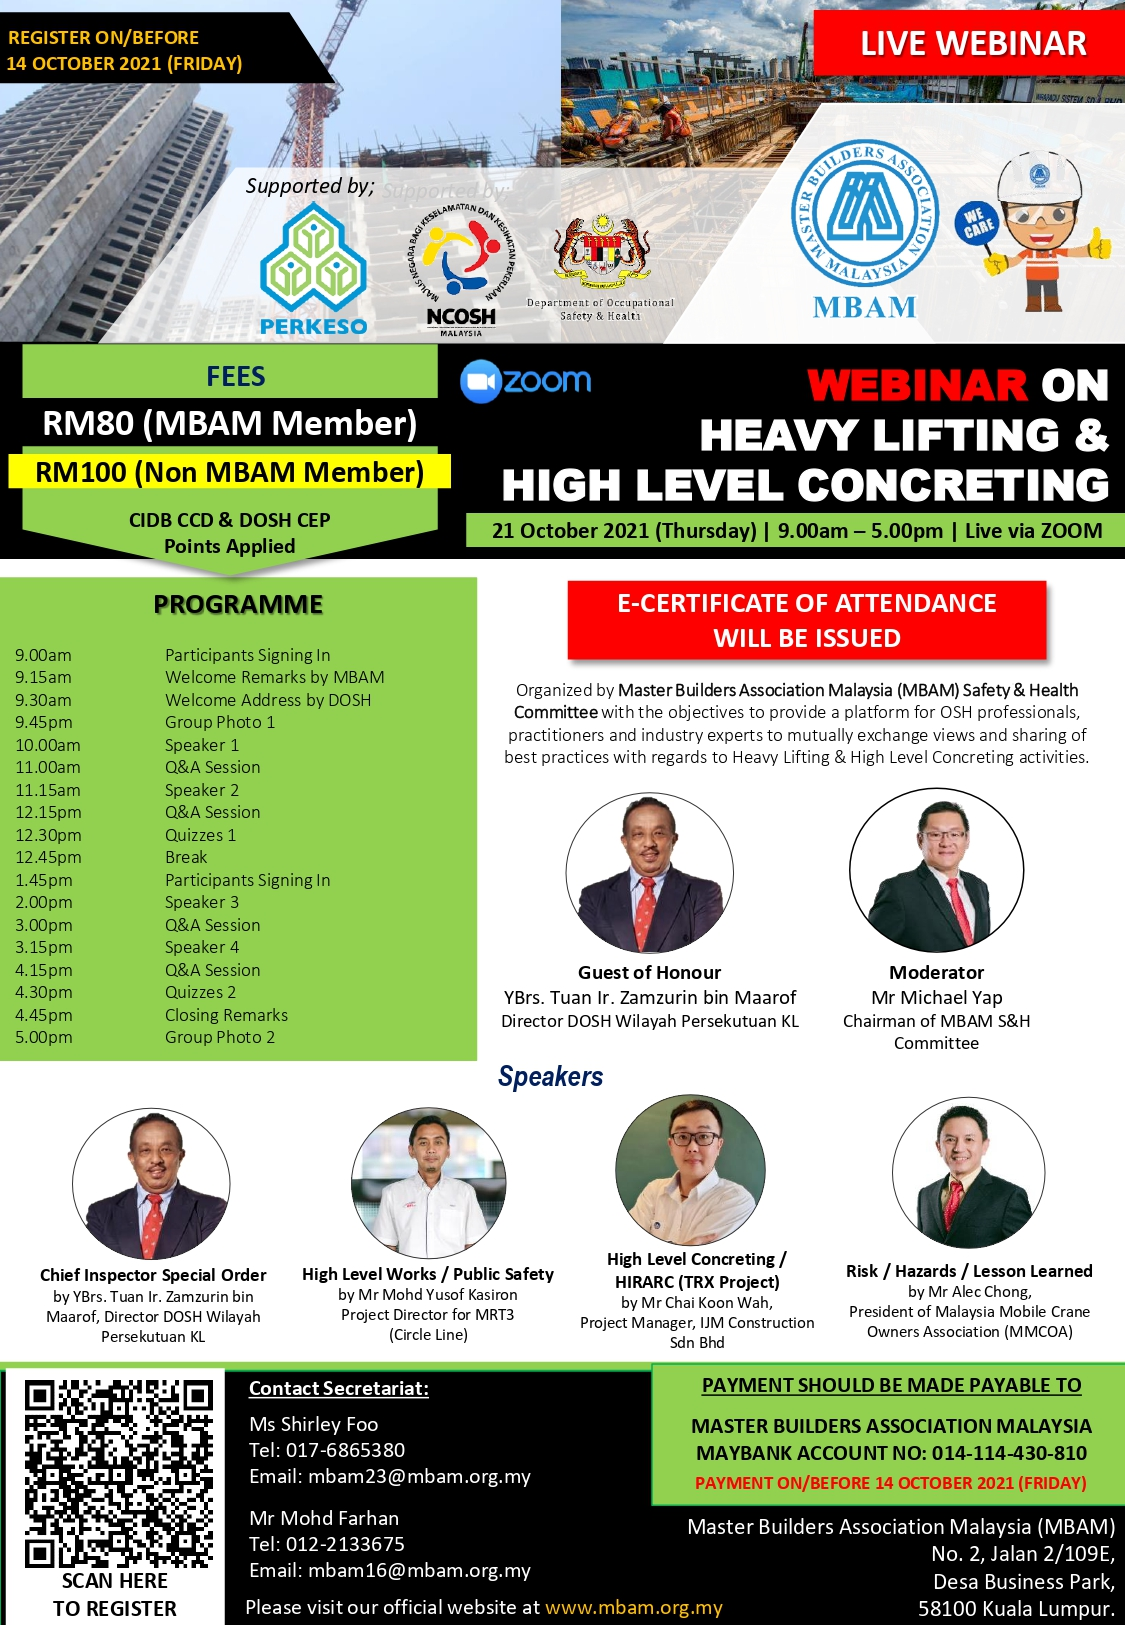 Brochure - Webinar on Heavy Lifting & High Level Concreting [21102021]_page-0001